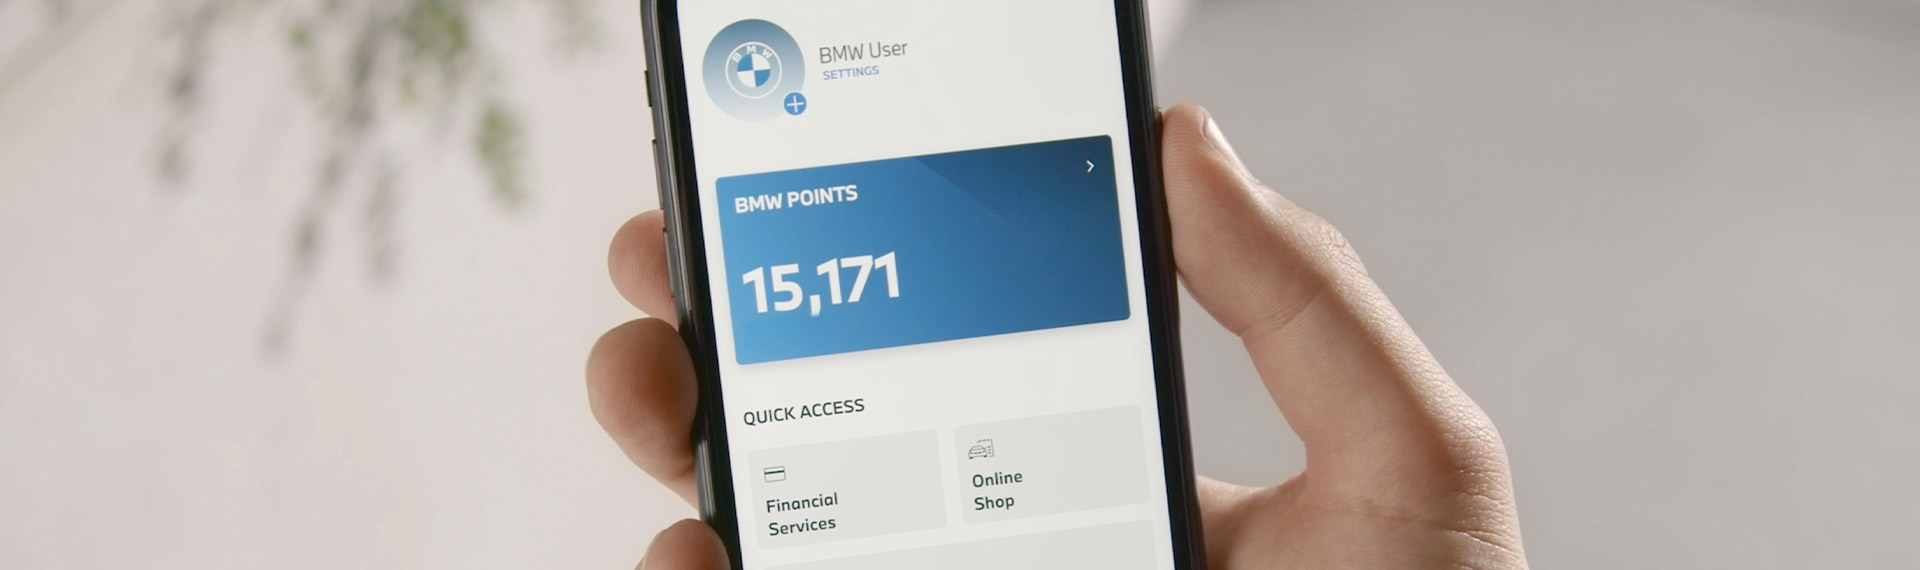 Smartphone showing BMW Points earned.